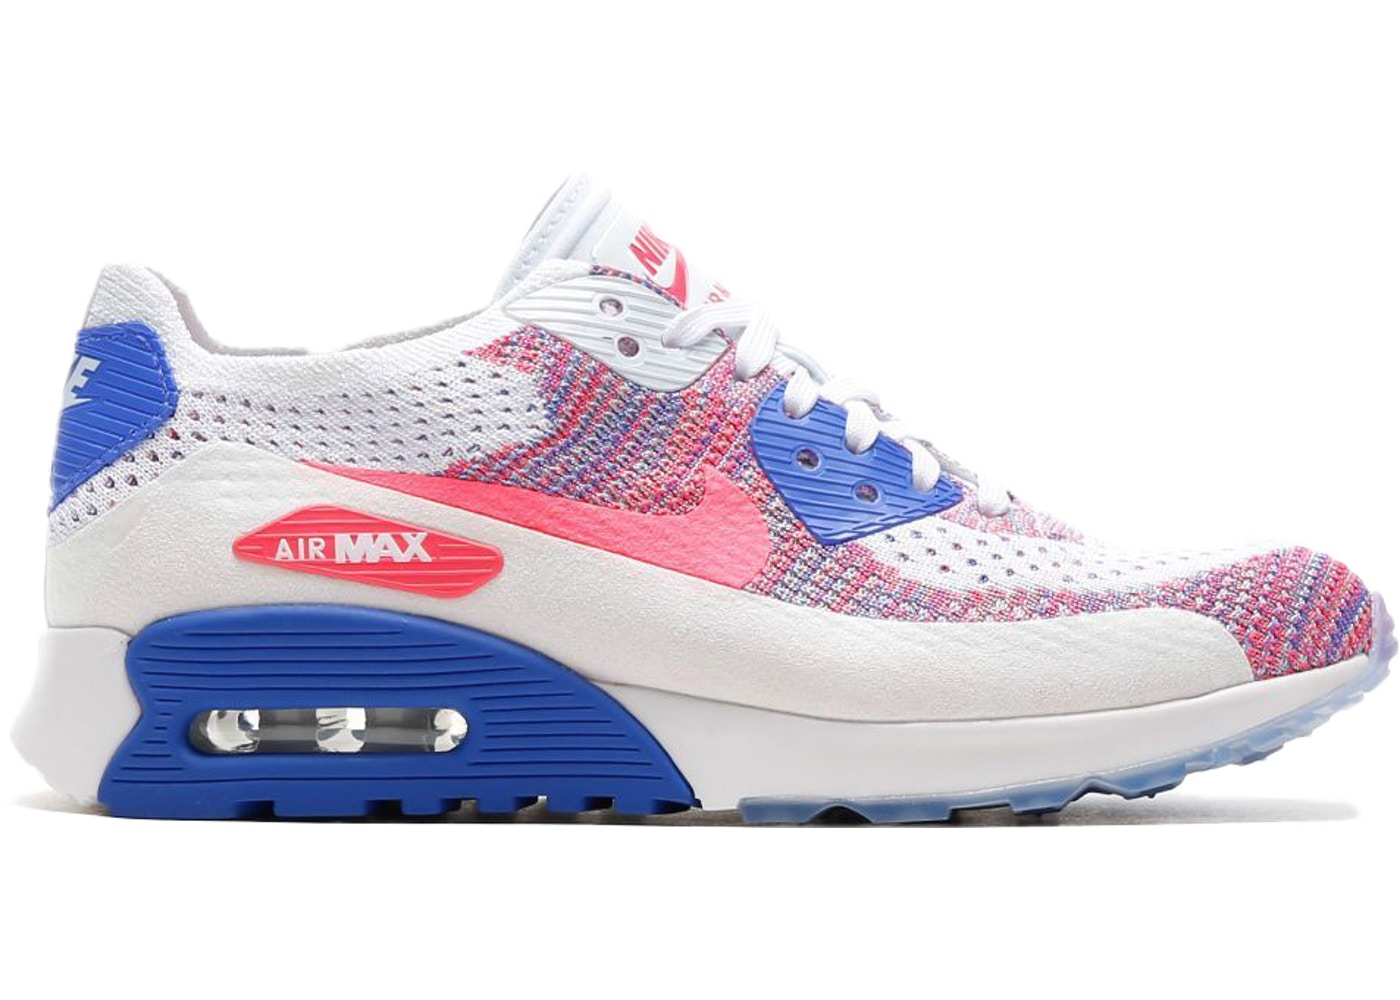 9f118cbc Sell. or Ask. Size: 10W. View All Bids. Air Max 90 Ultra 2.0 Flyknit Racer  Pink ...